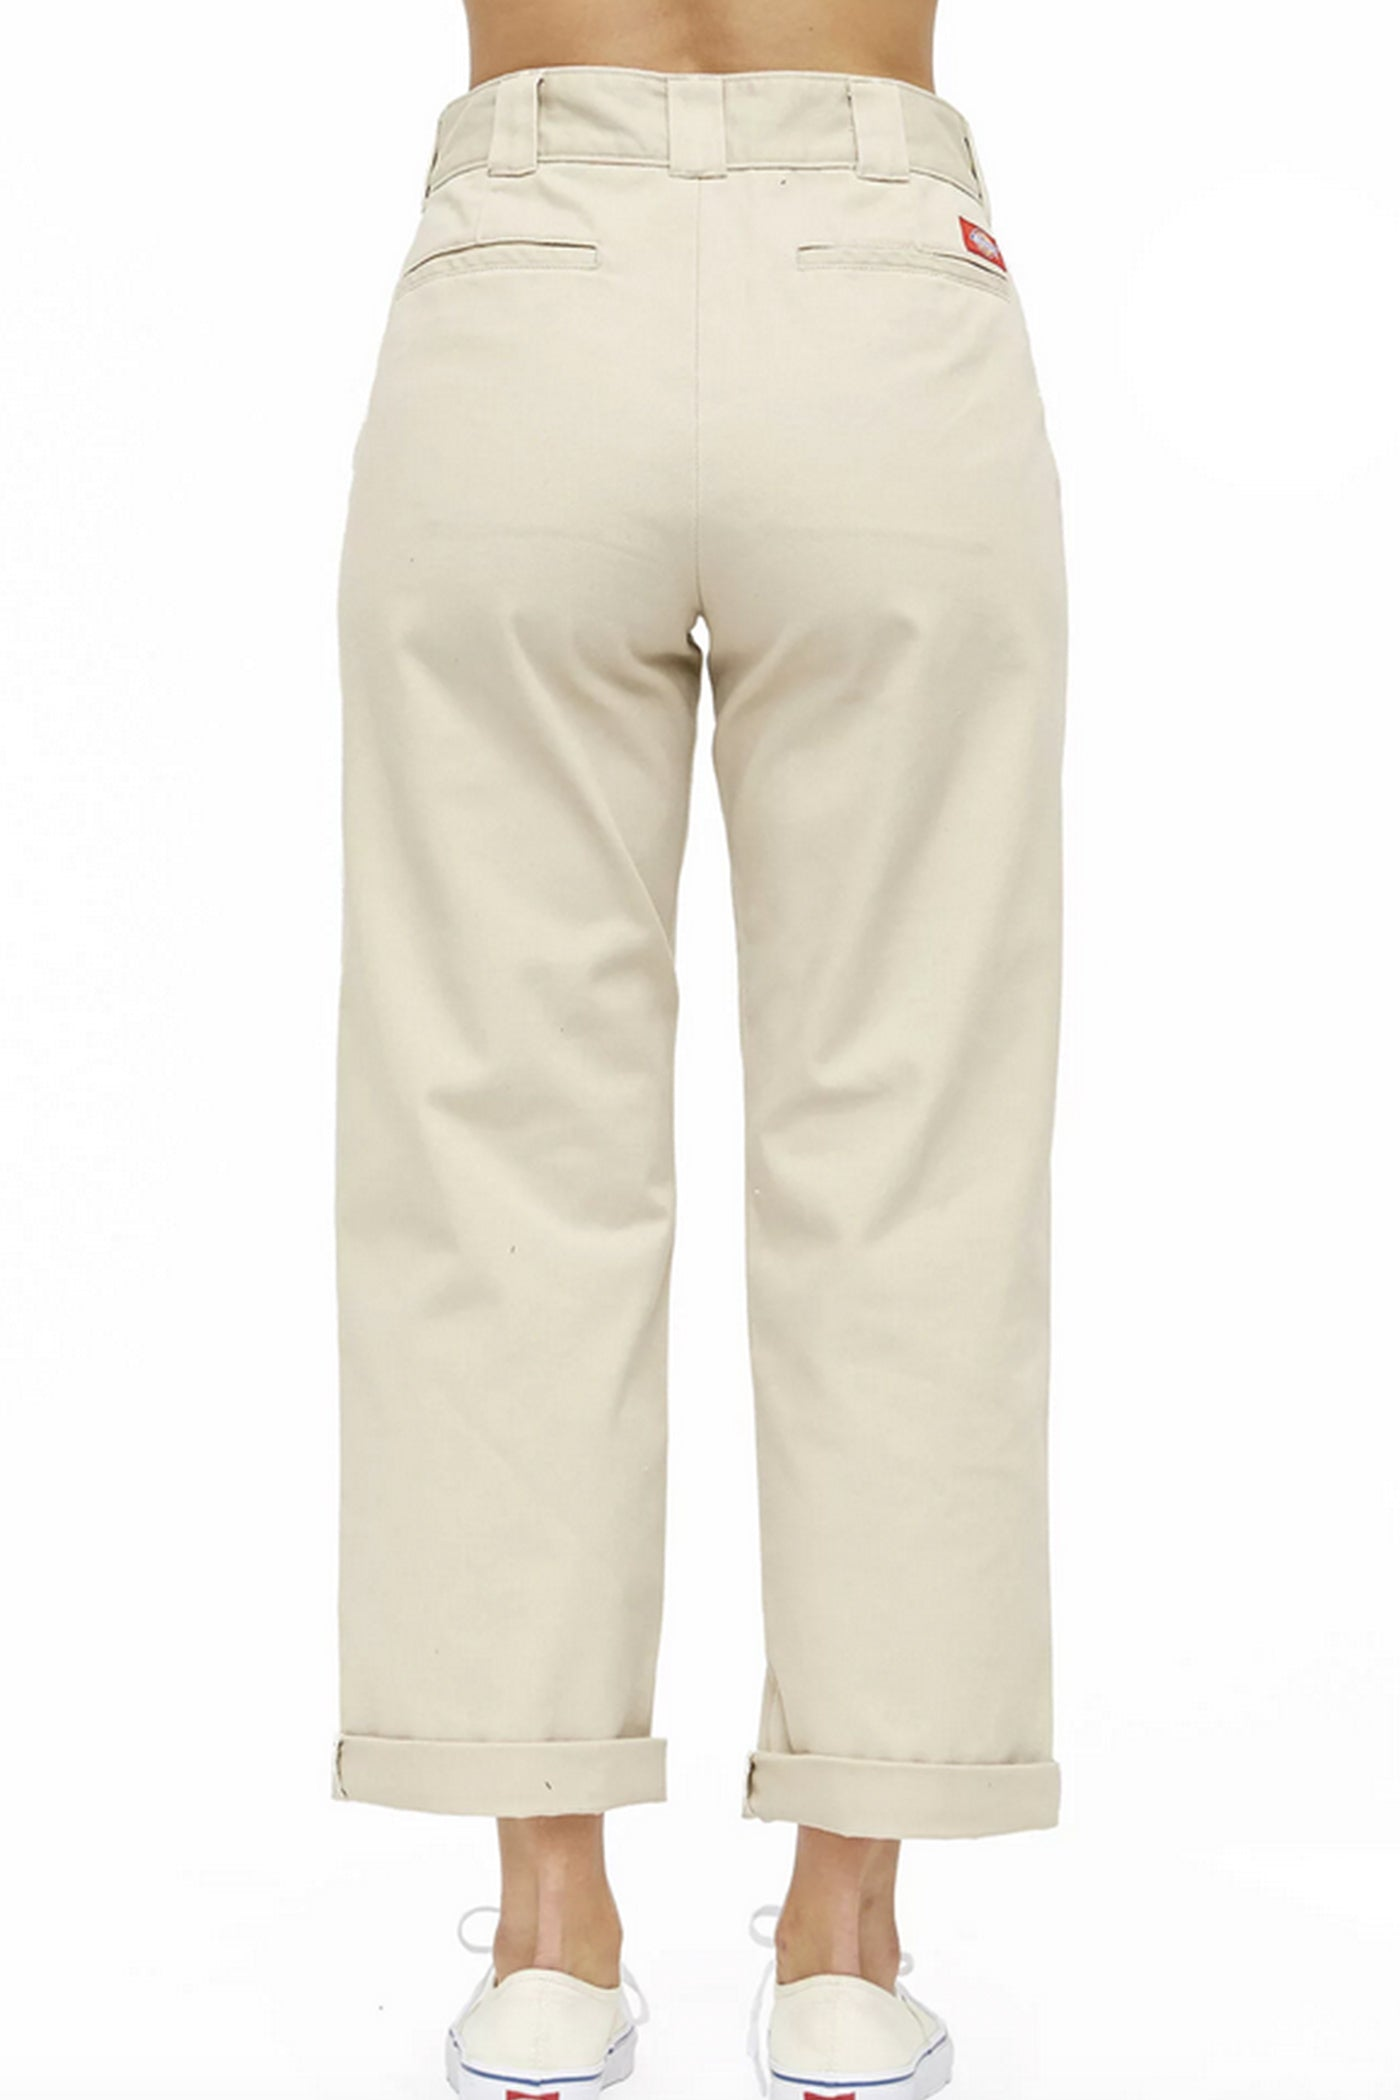 Dickie's Work Crop Roll Hem Pants